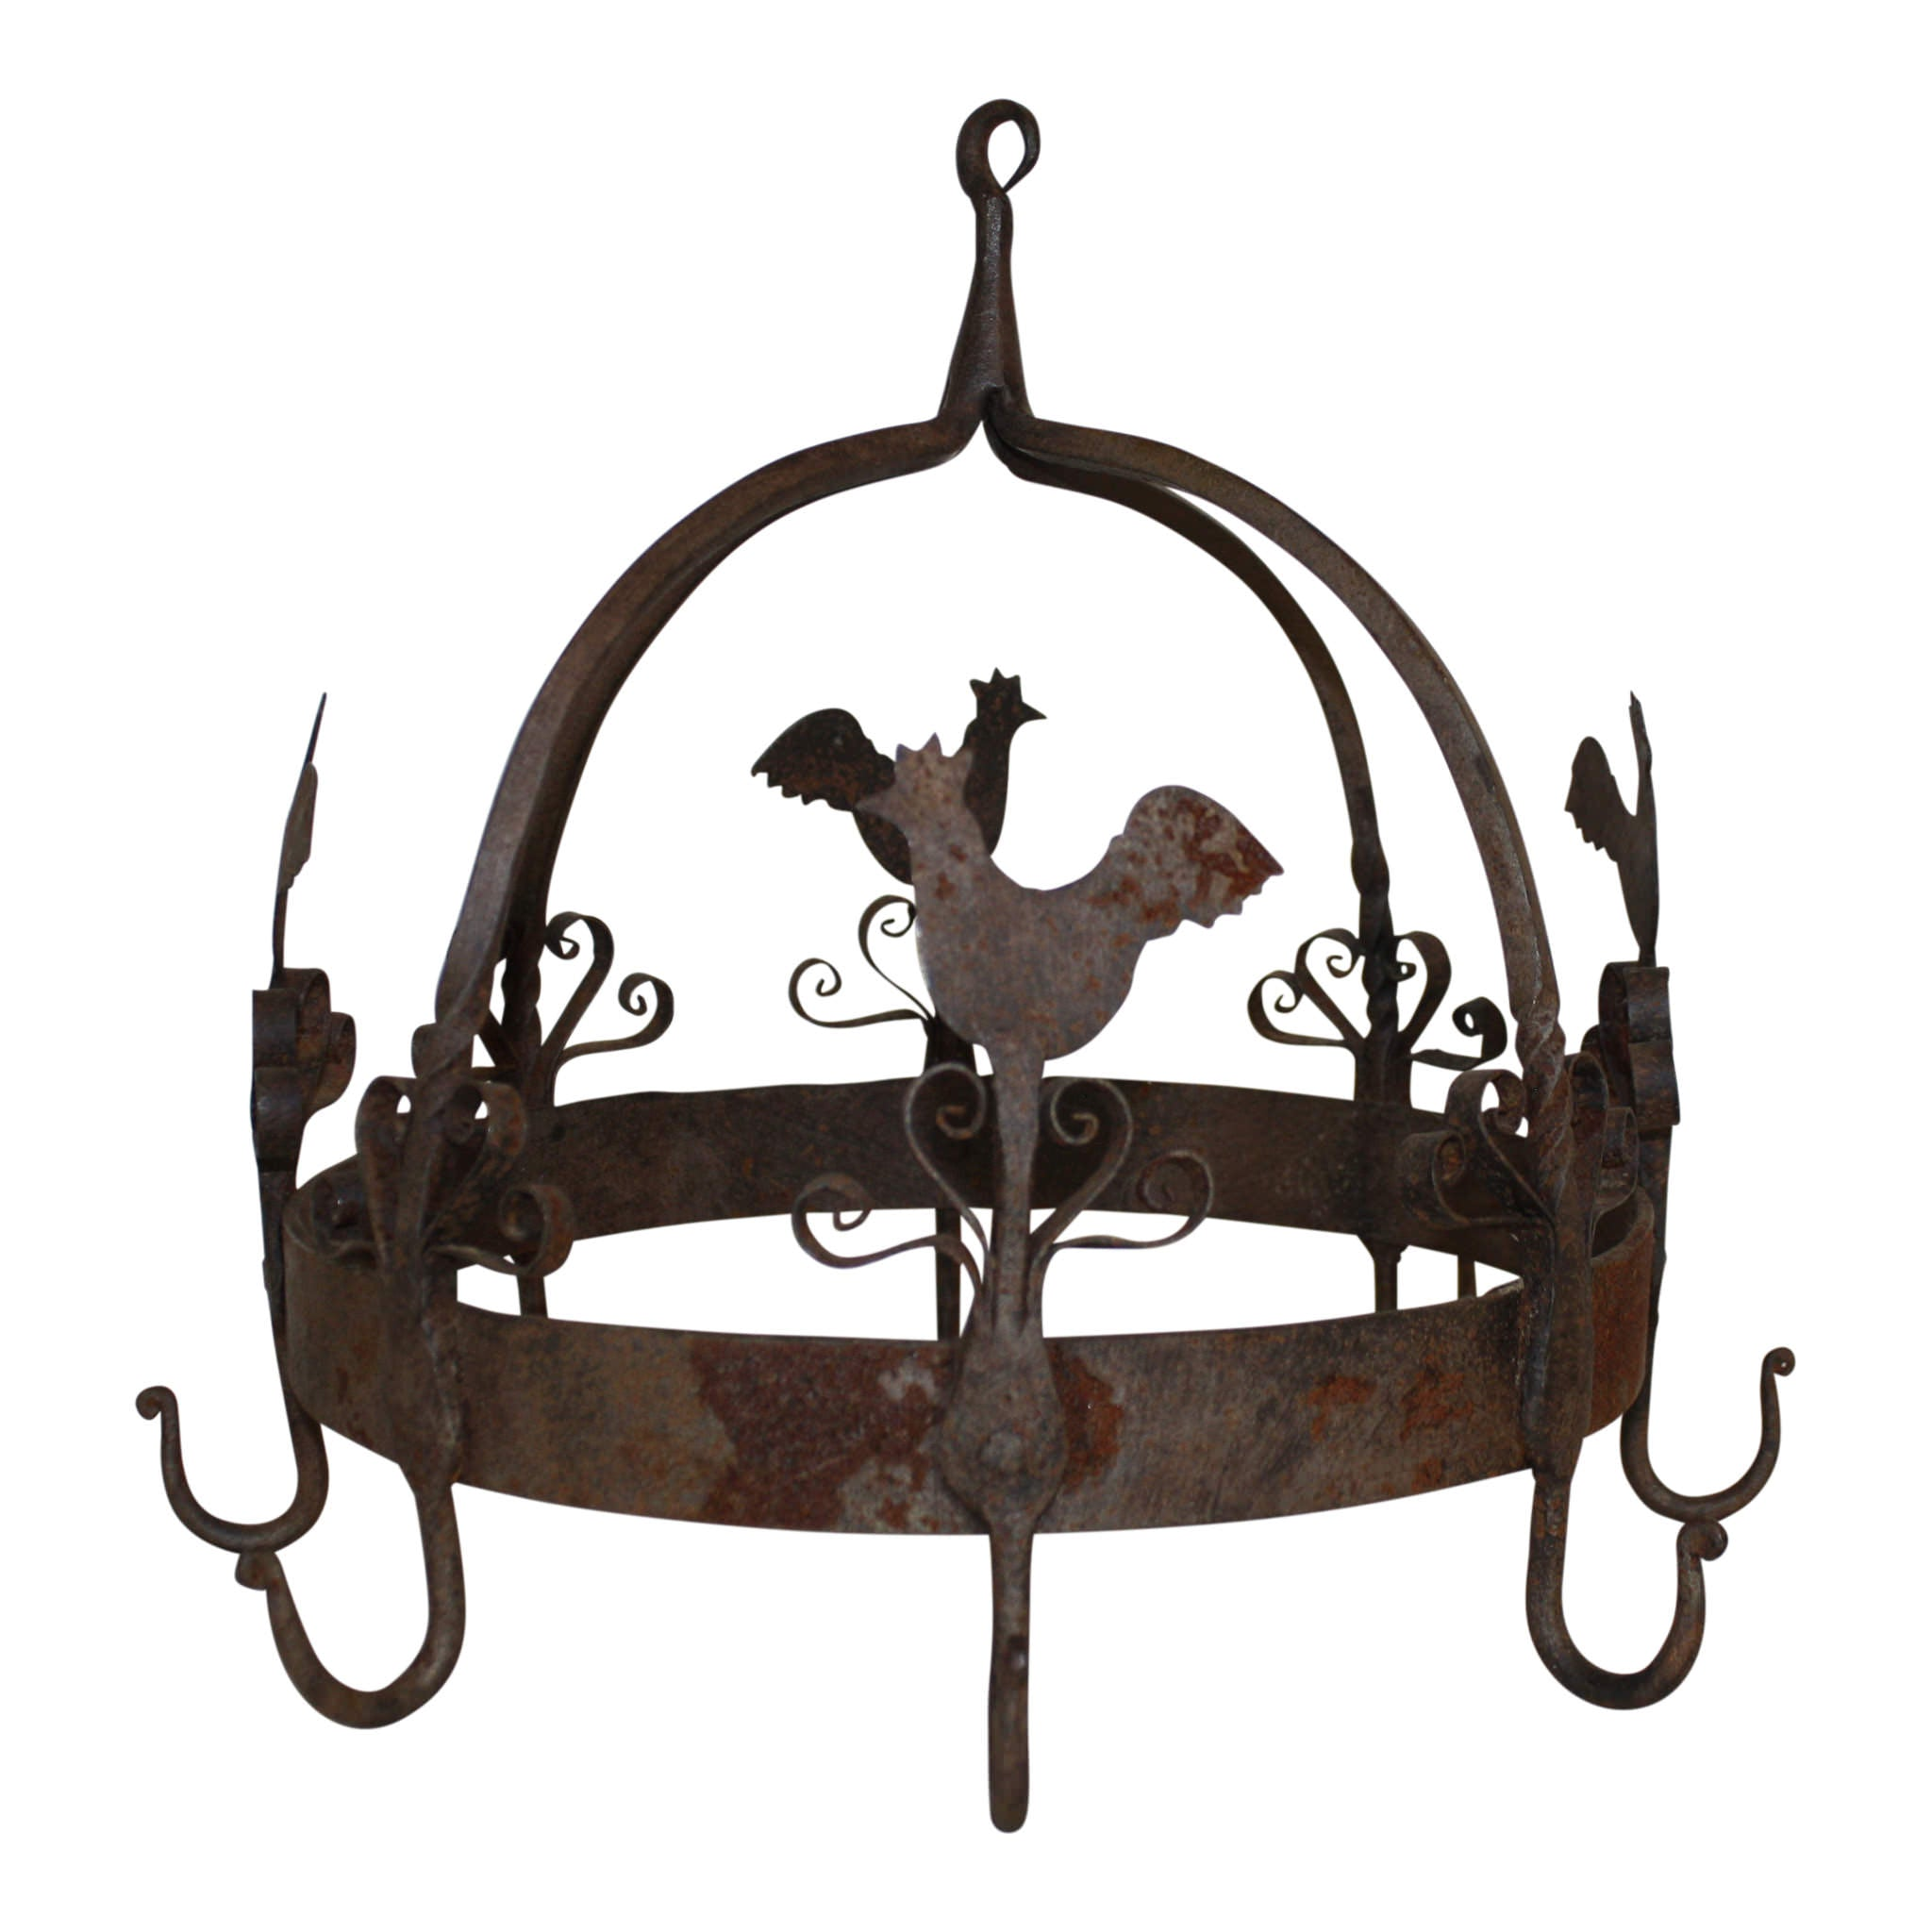 Hanging Iron Rack with Chickens